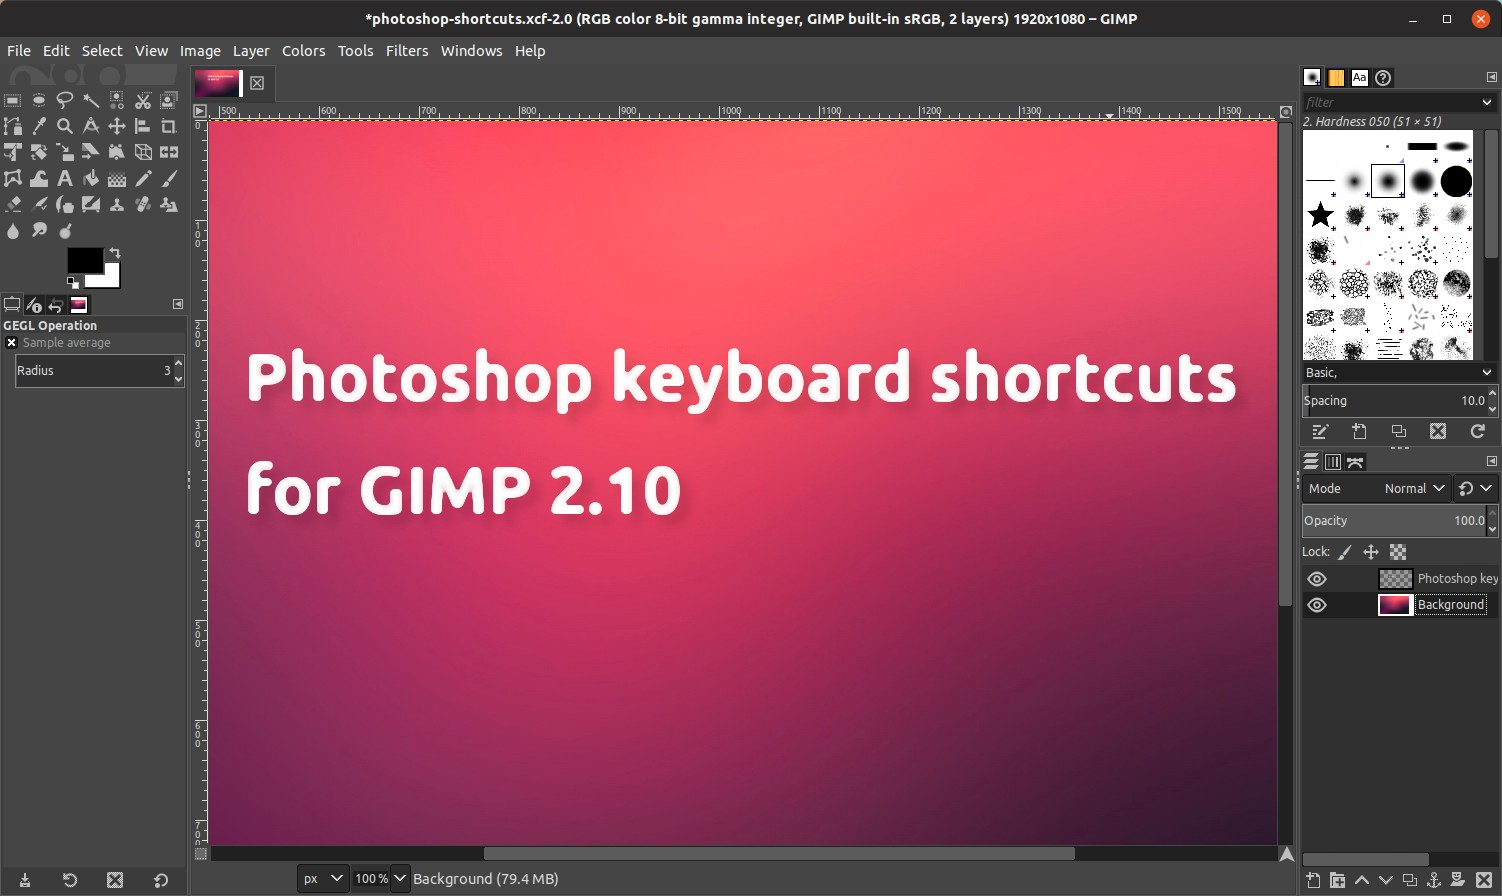 Configure GIMP 2 10 To Use Photoshop Keyboard Shortcuts (How-To